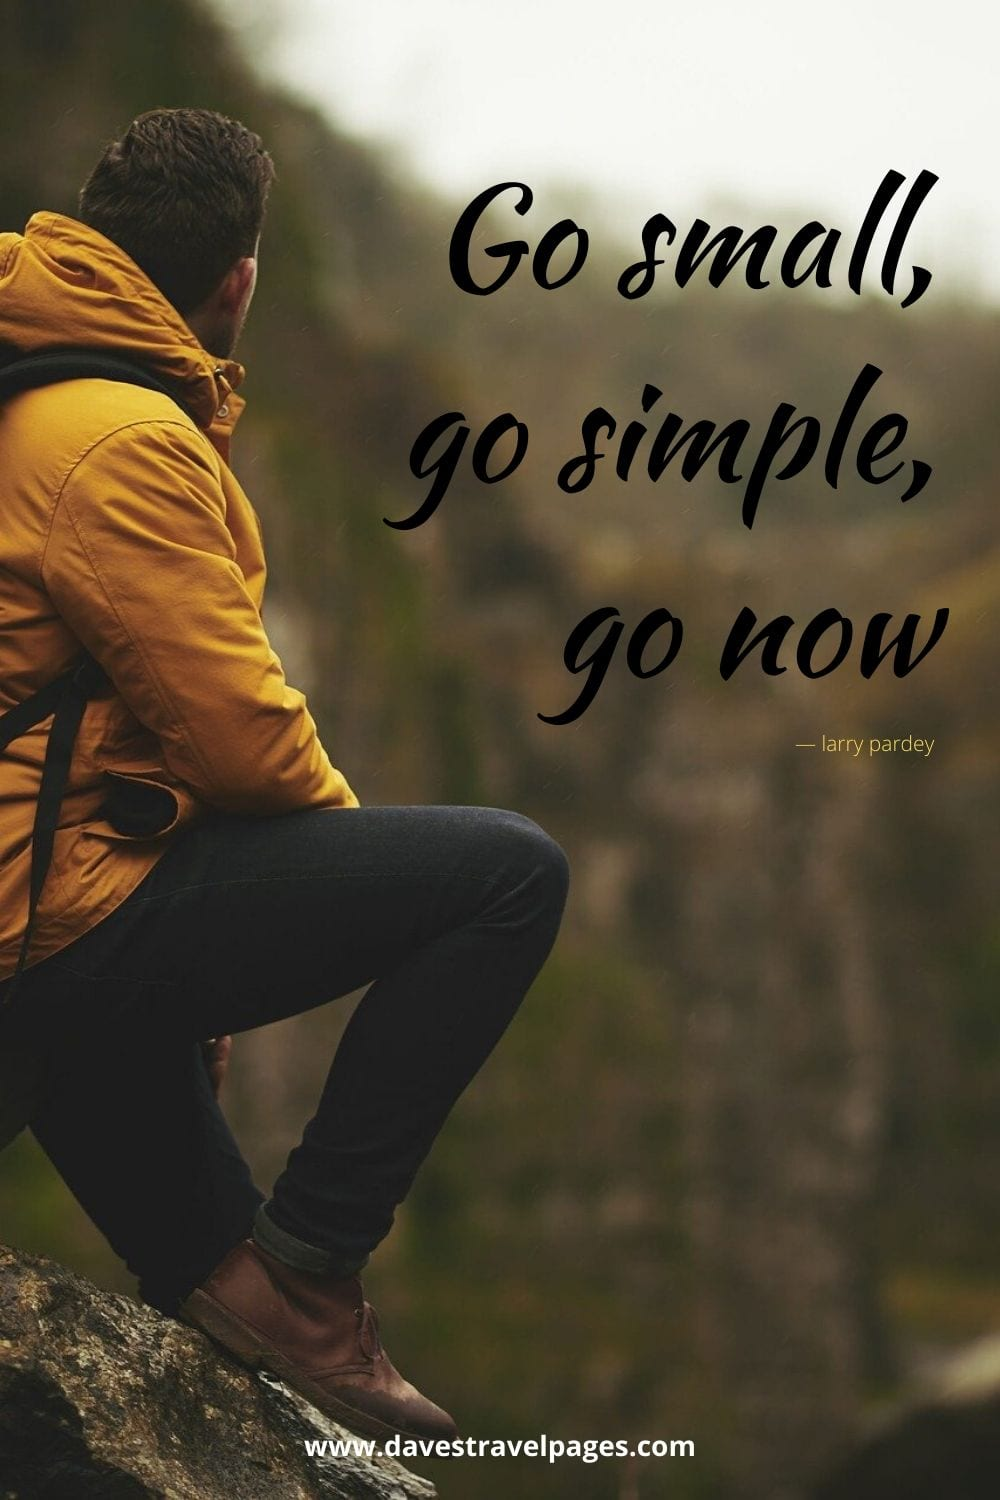 "Go small, go simple, go now""― larry pardey"